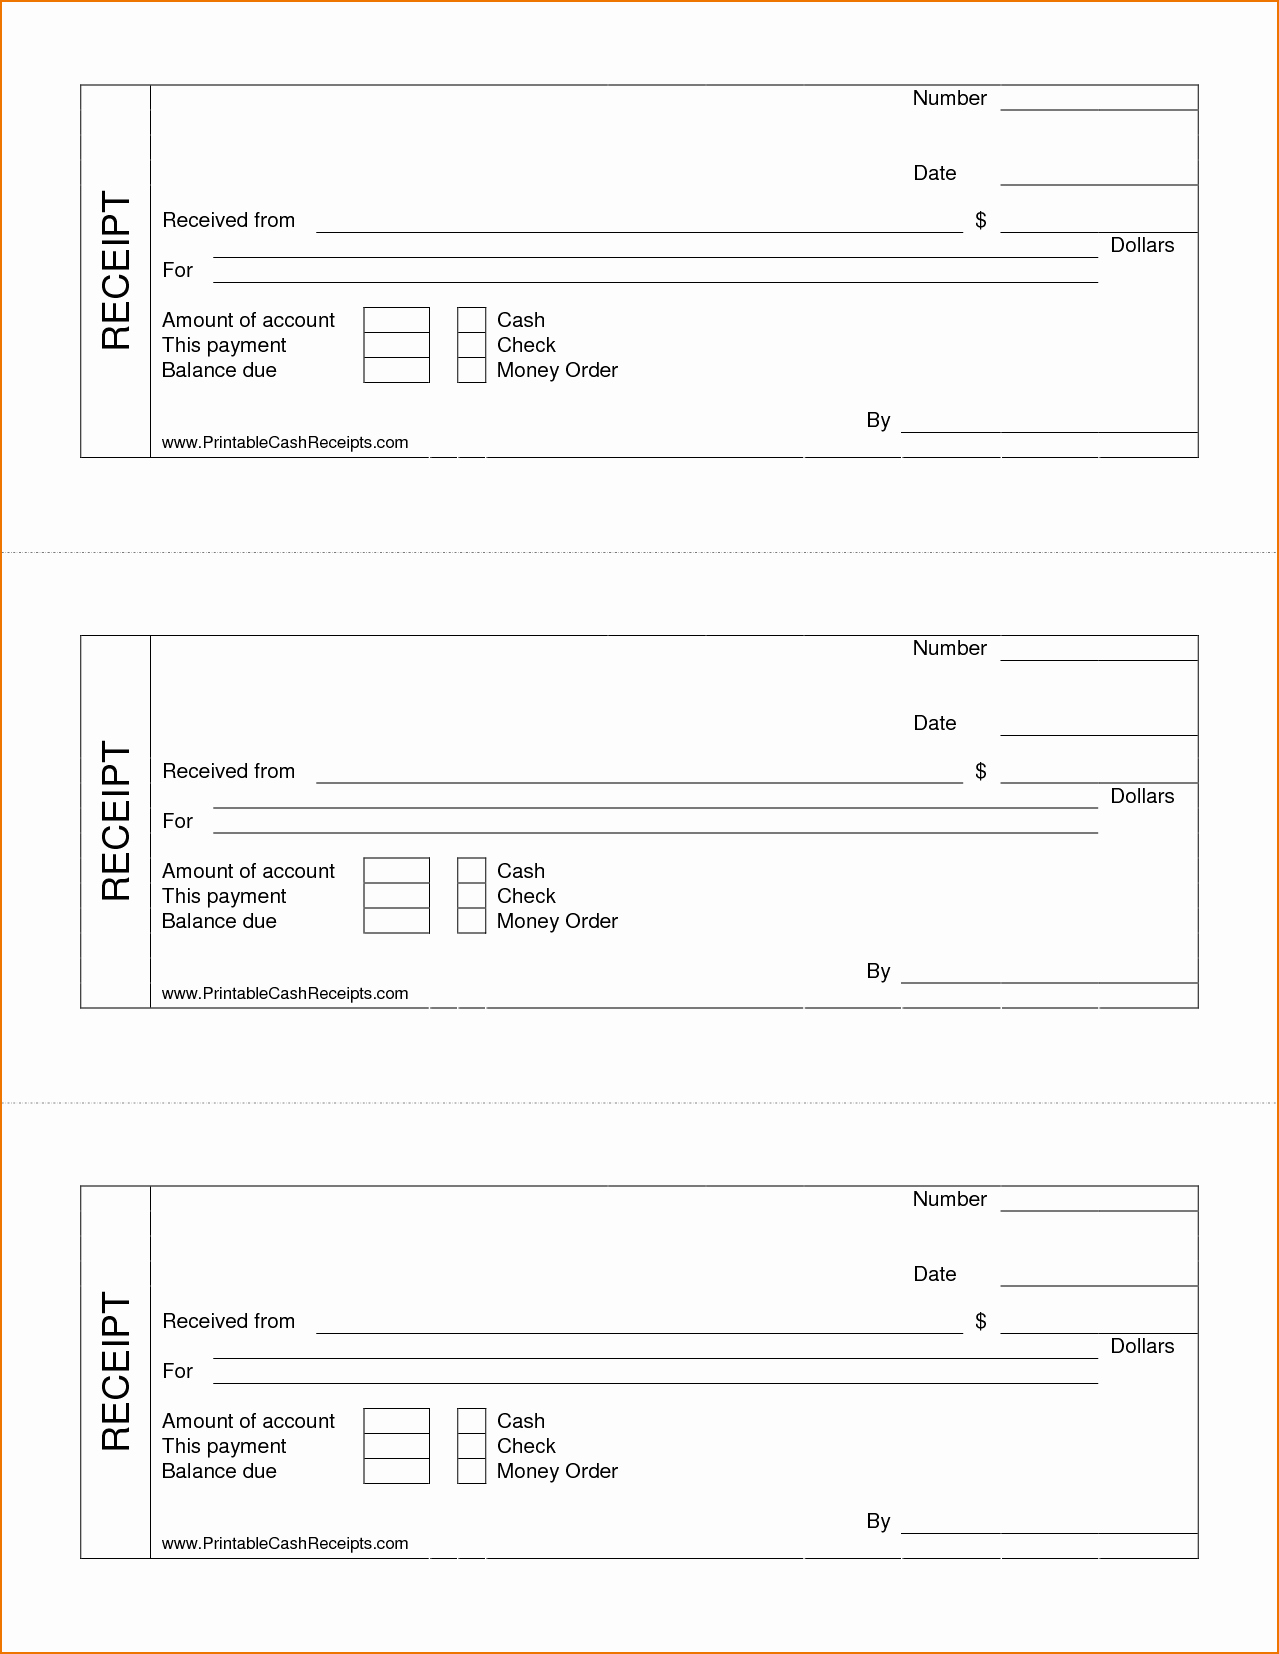 Receipt Template Free Printable New Printable Receipt for Services